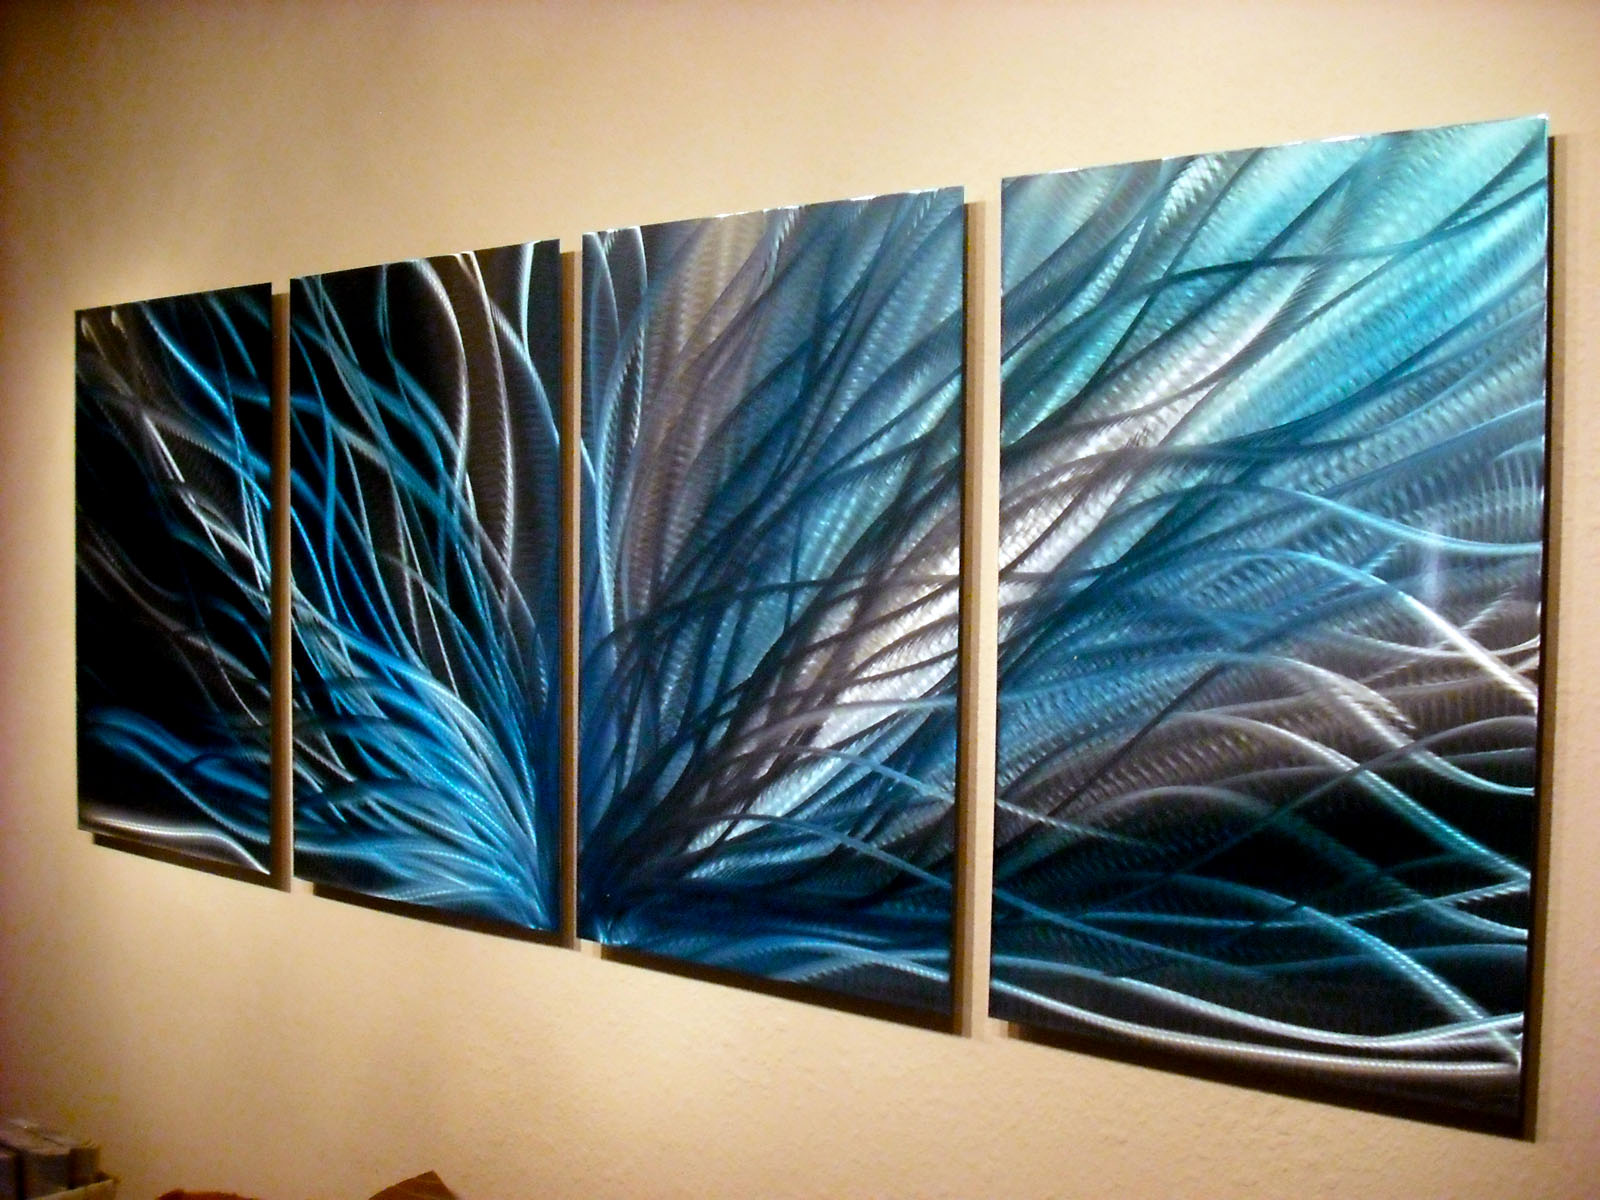 Radiance in blues abstract metal wall art contemporary modern decor inspiring art gallery - Contemporary wall art decor ...